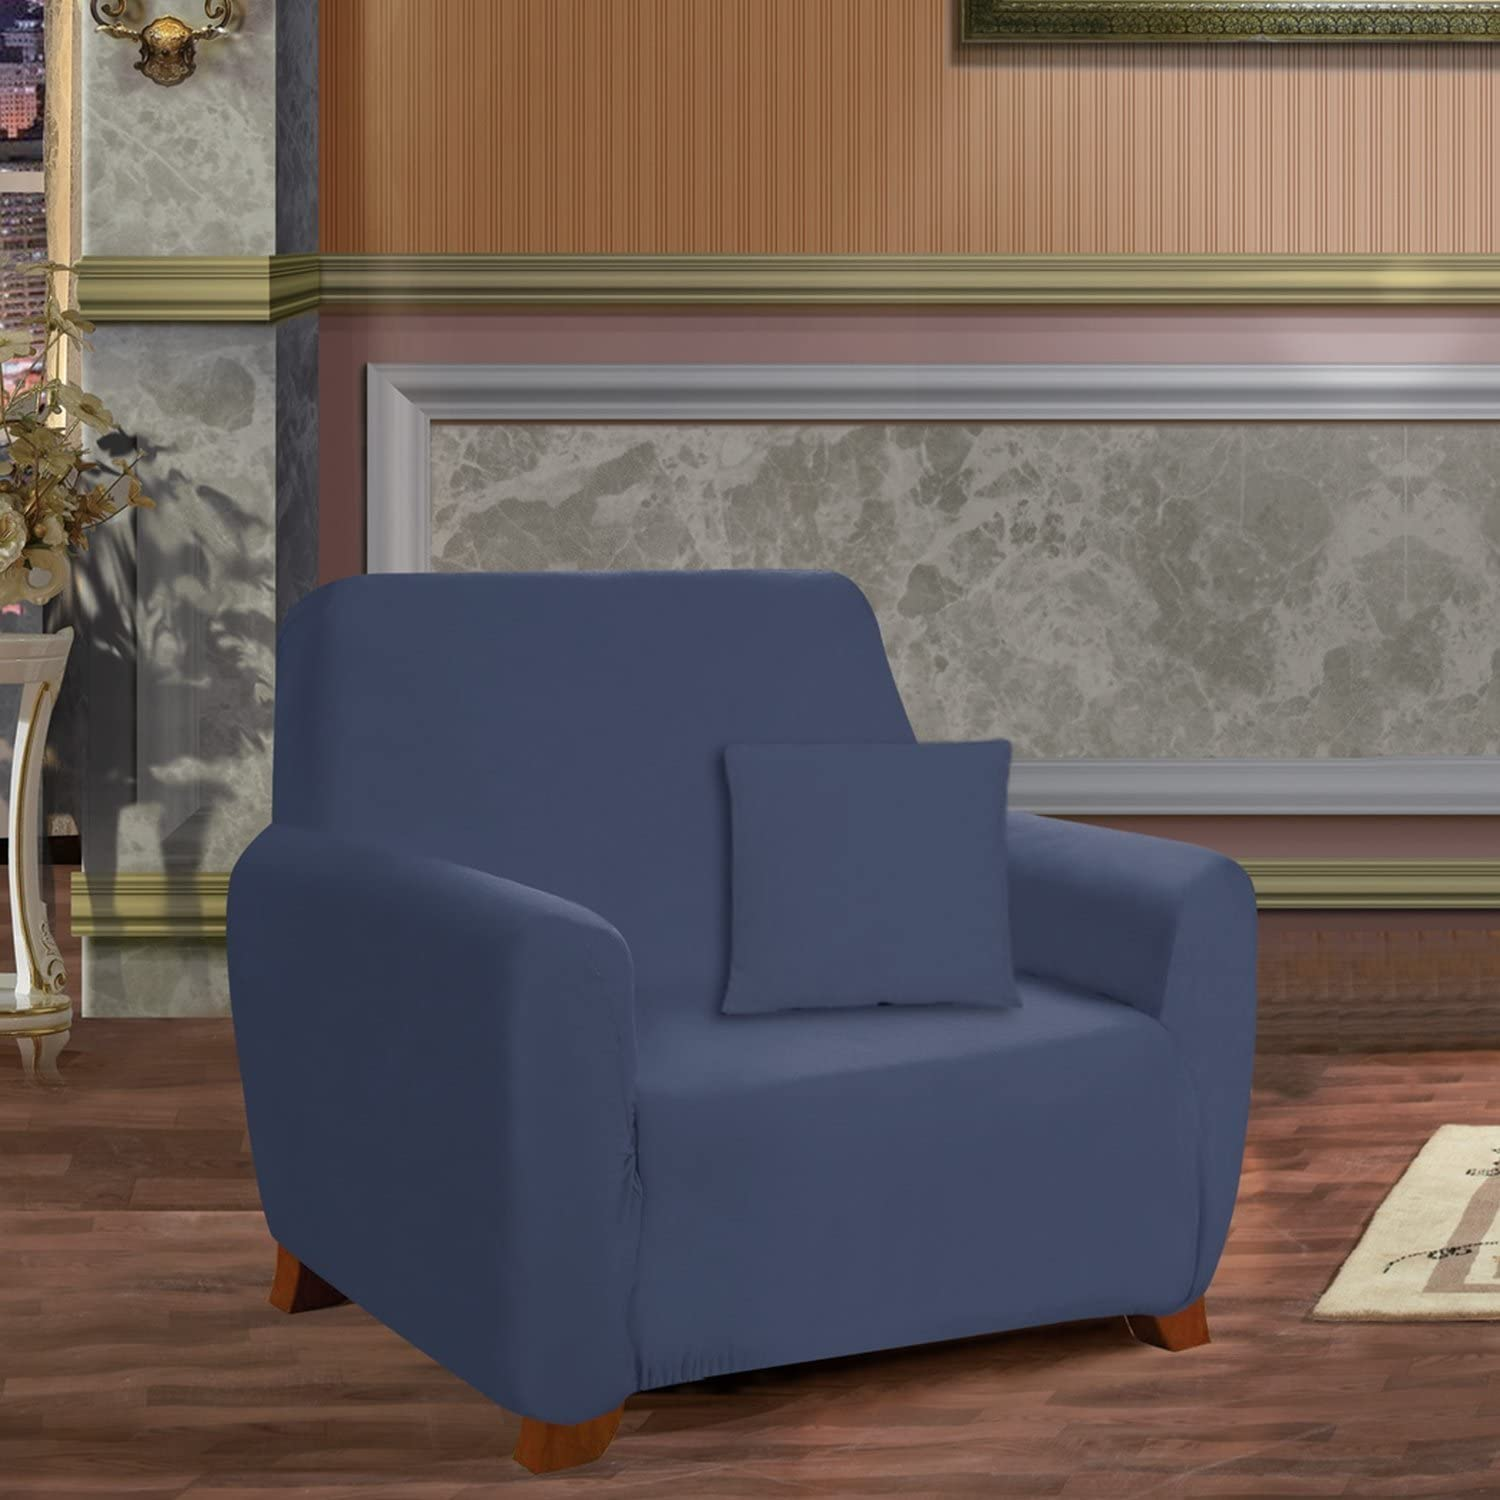 Elegant Comfort Luxury Furniture Protector Jersey Stretch SLIPCOVER, Chair Navy Blue